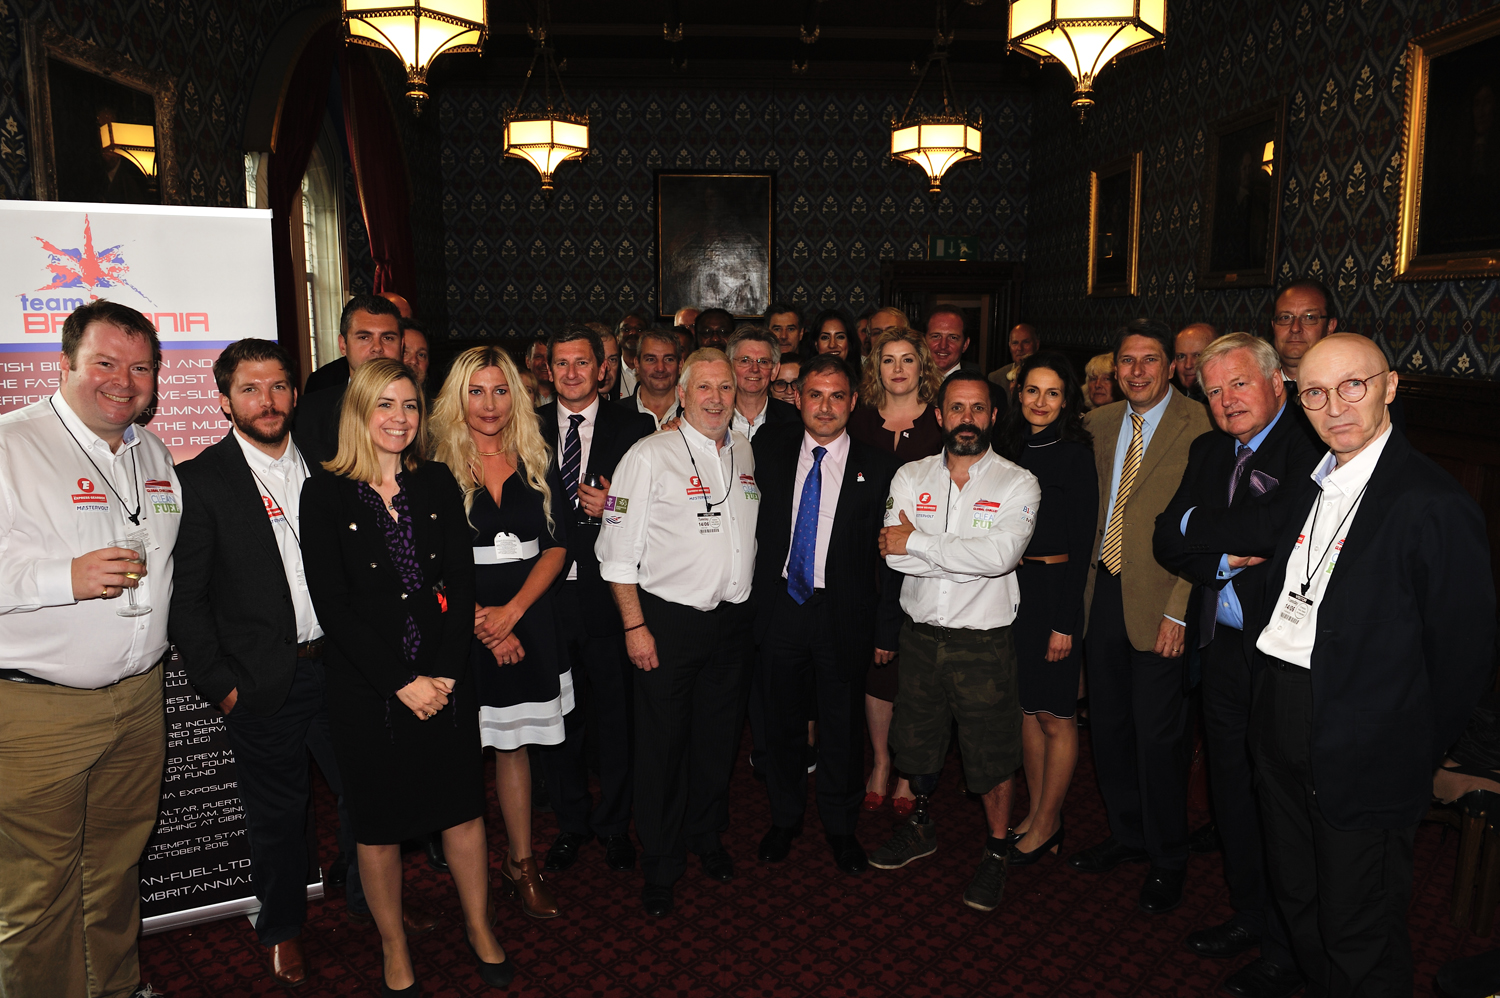 Team Britannia at the House of Commons